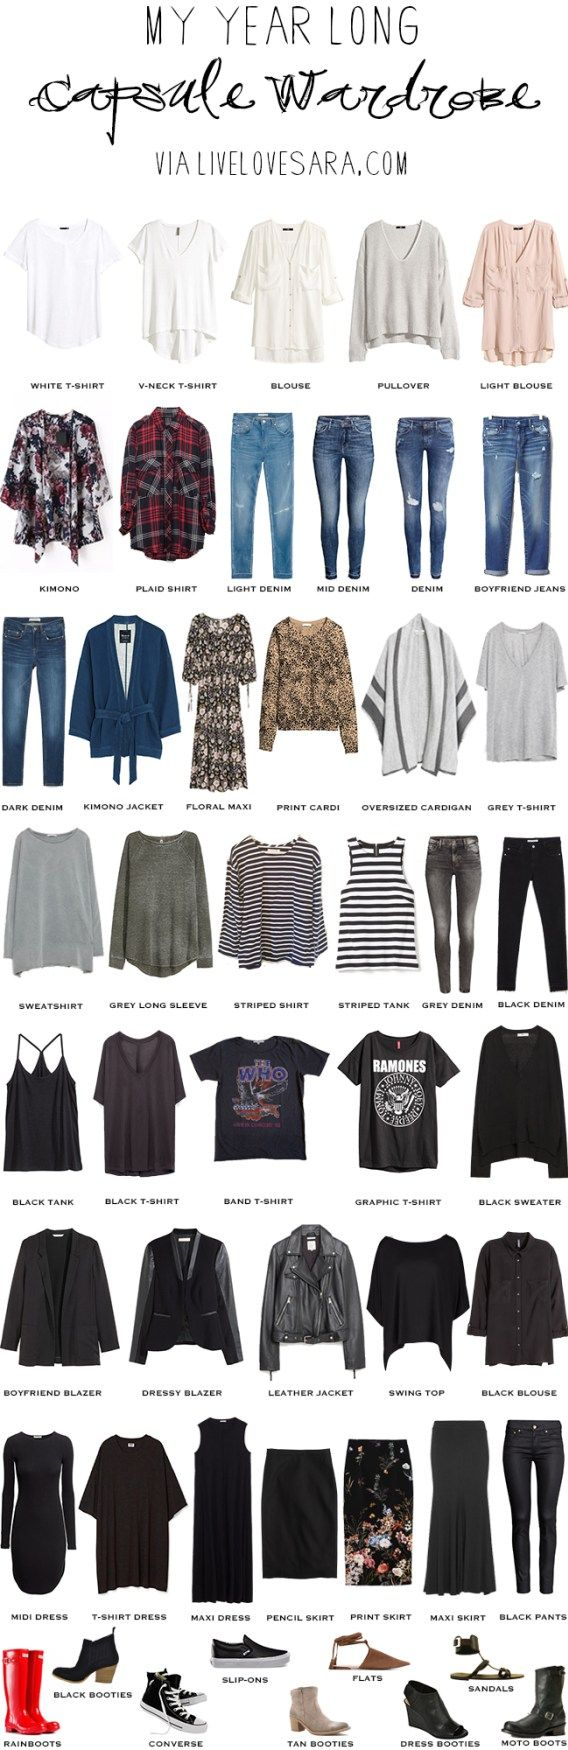 While this list says What to Pack for Venice, Italy this trip is also encompassing Florence, Rome, Taormina Sicily, Sorrento, and Capri. I…..